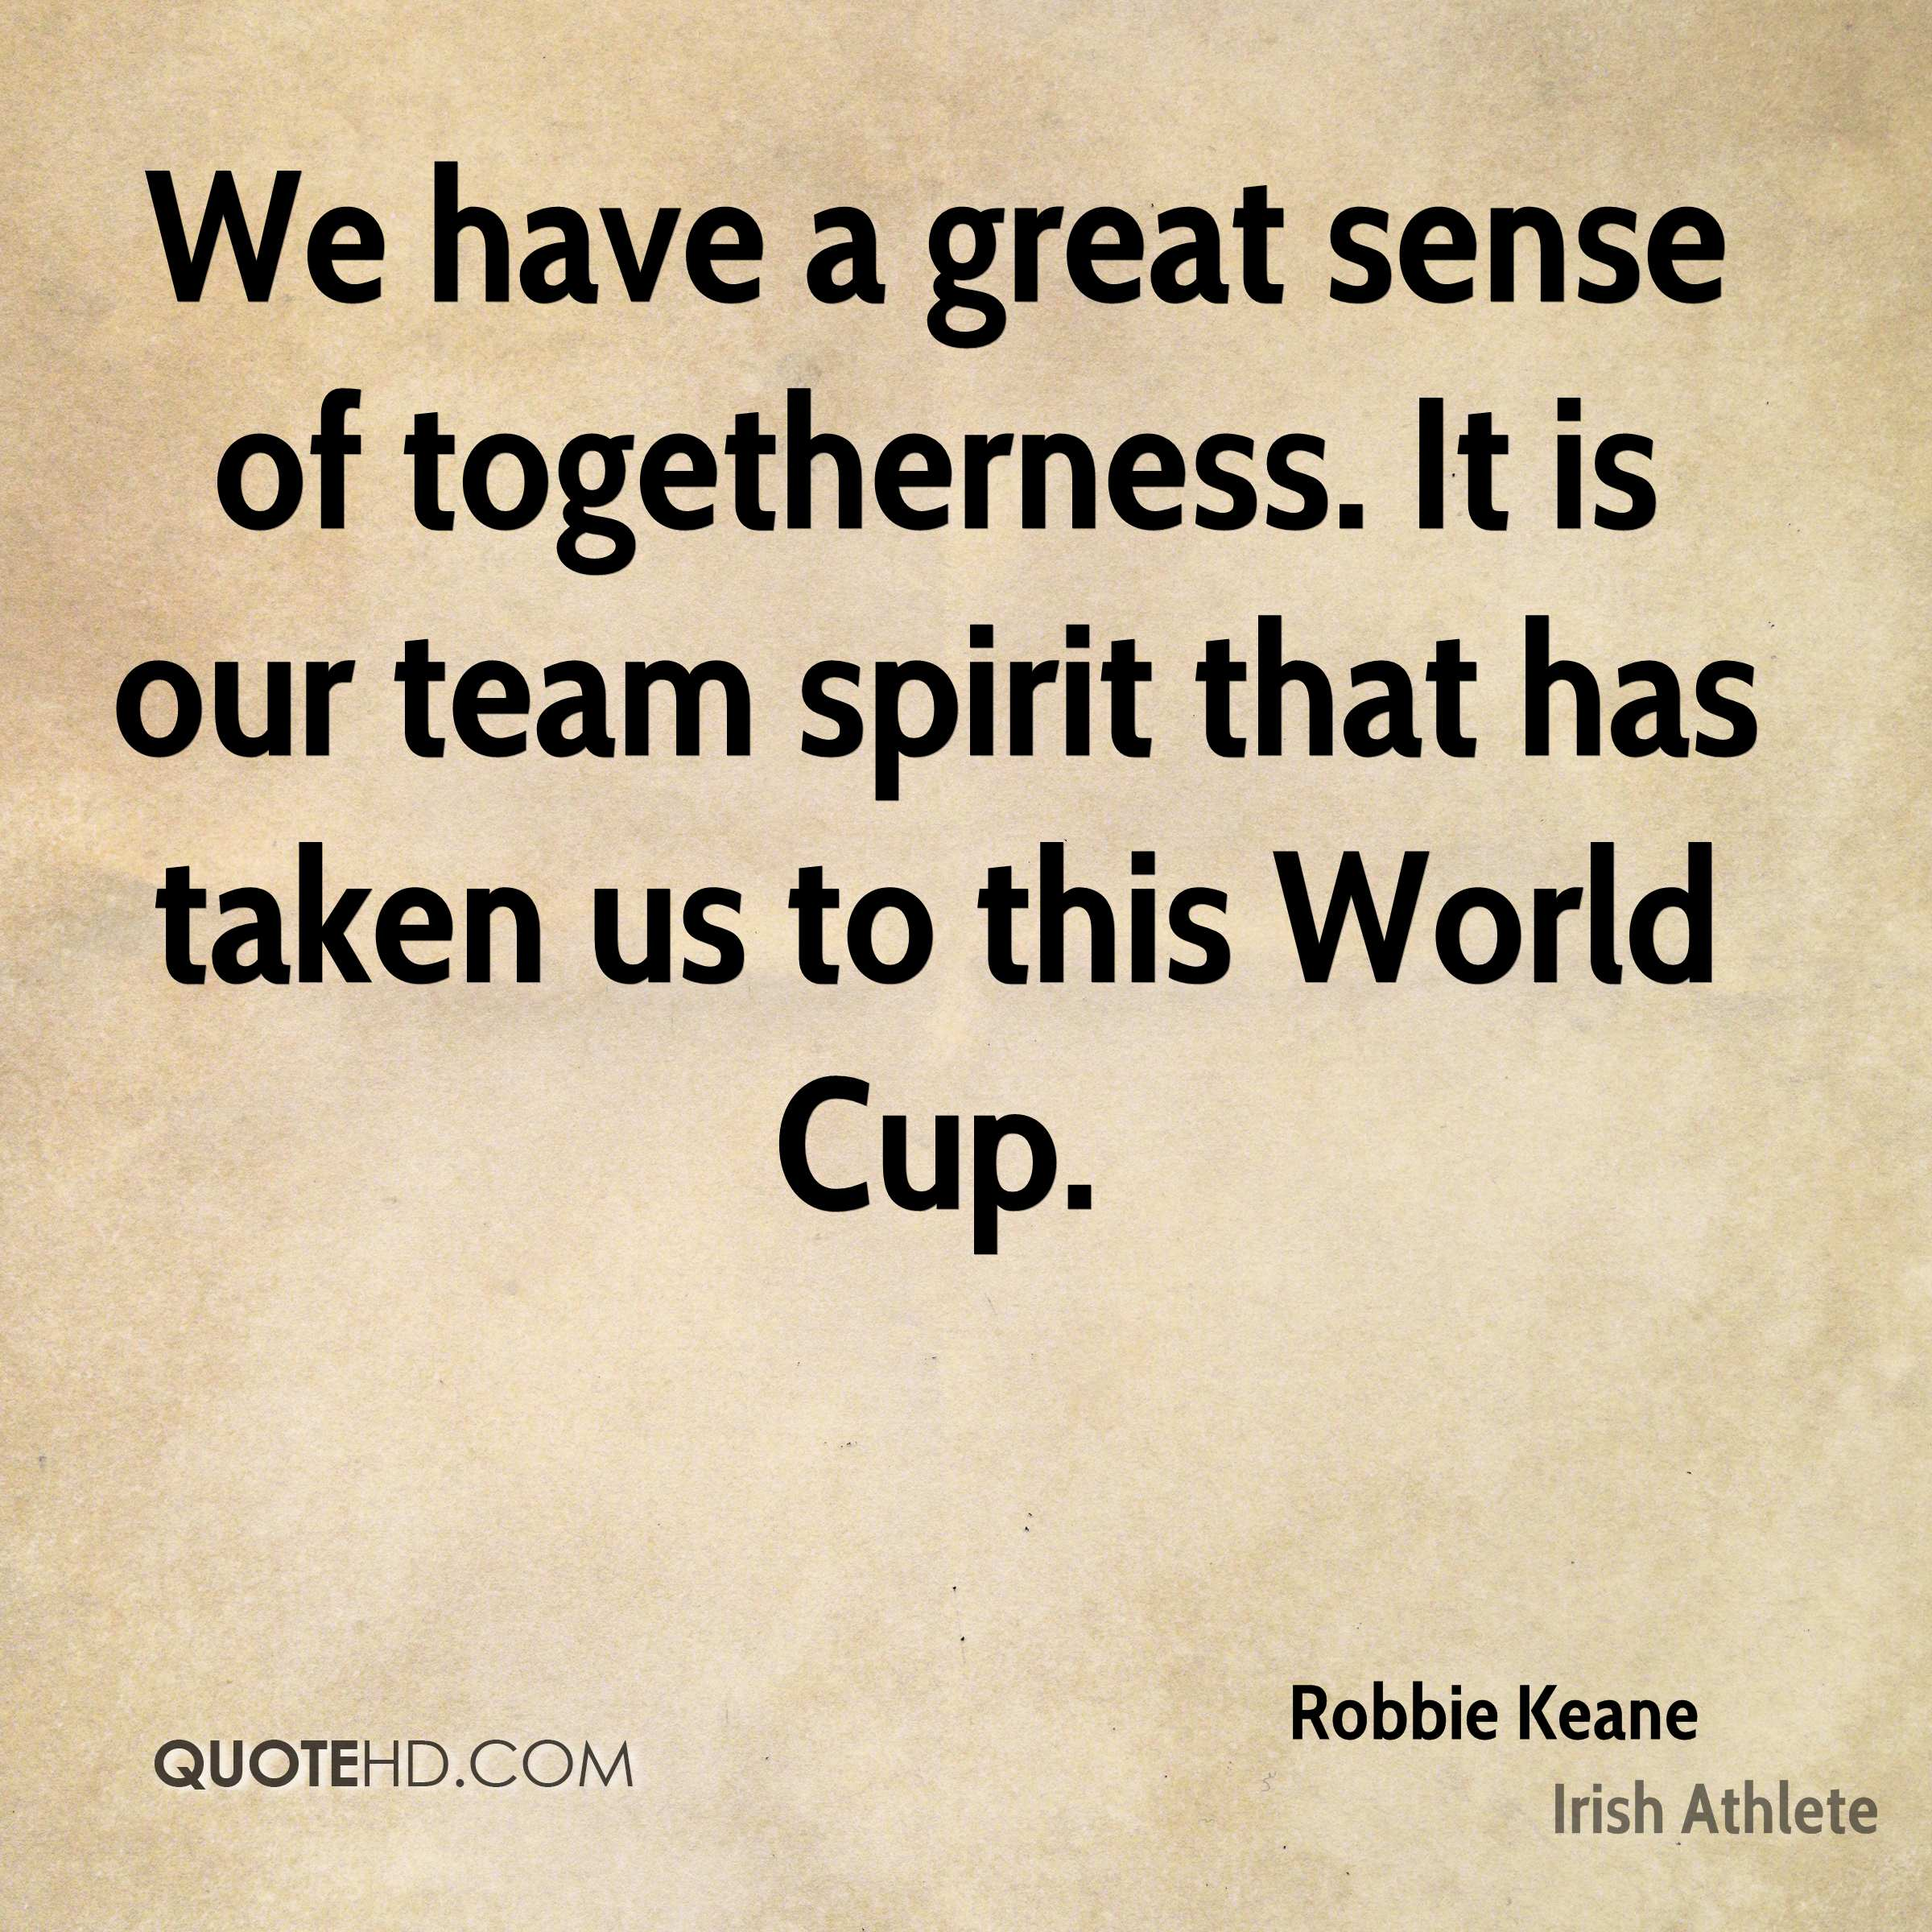 We have a great sense of togetherness. It is our team spirit that has taken us to this World Cup.